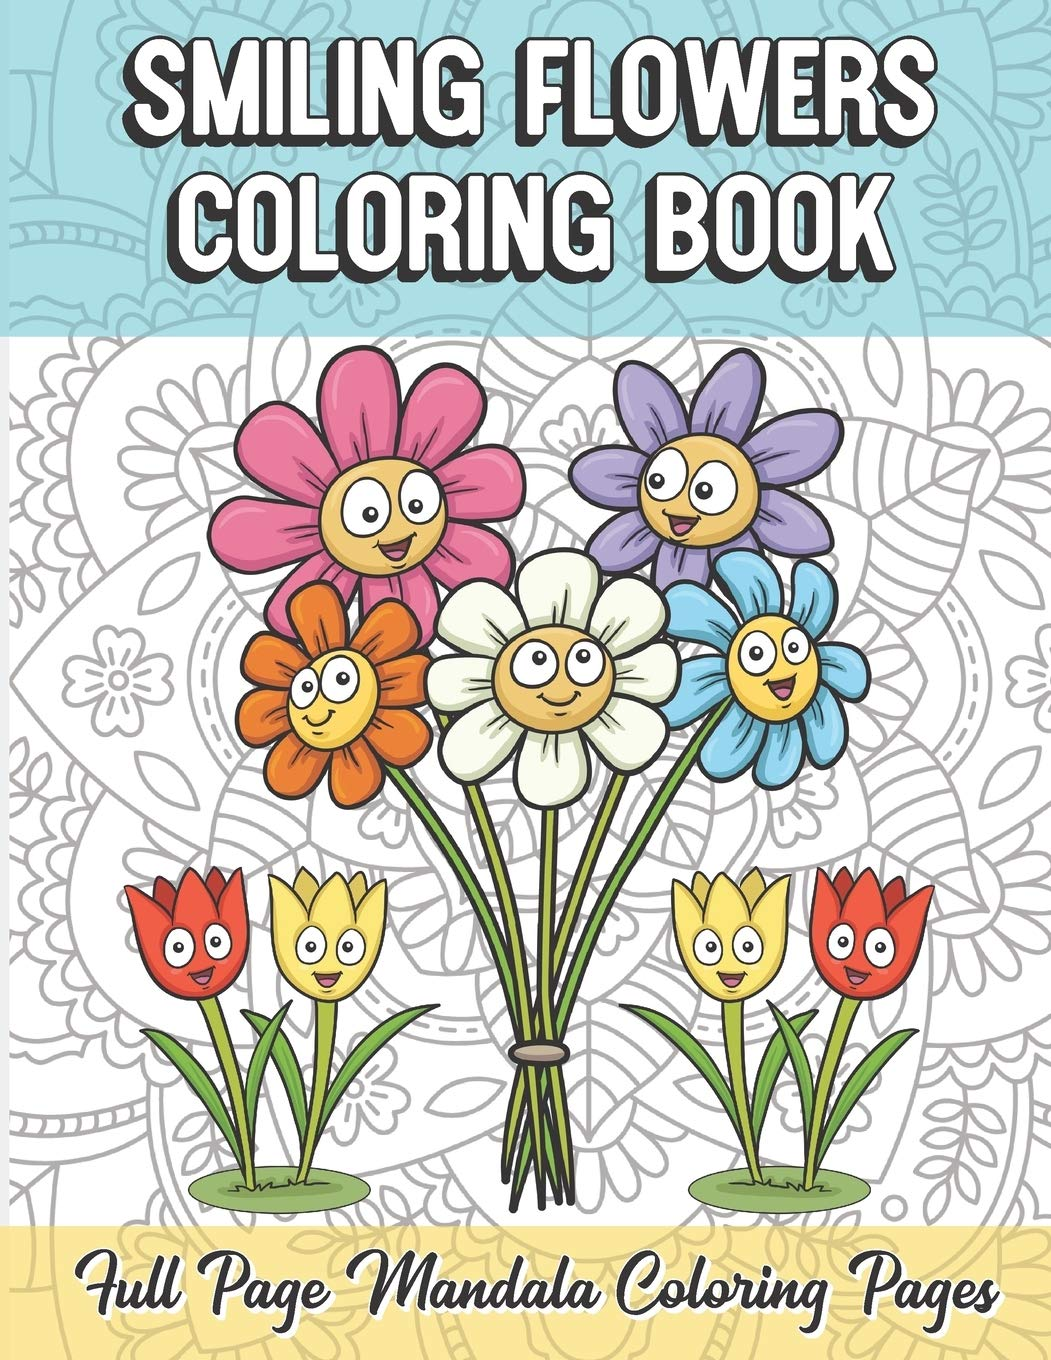 Smiling Flowers Coloring Book Full Page Mandala Coloring Pages Color Book With Mindfulness And Stress Relieving Designs With Mandala Patterns For Coloring Guide For Meditation And Happiness Publishing Funnyreign 9781086591323 Amazon Com